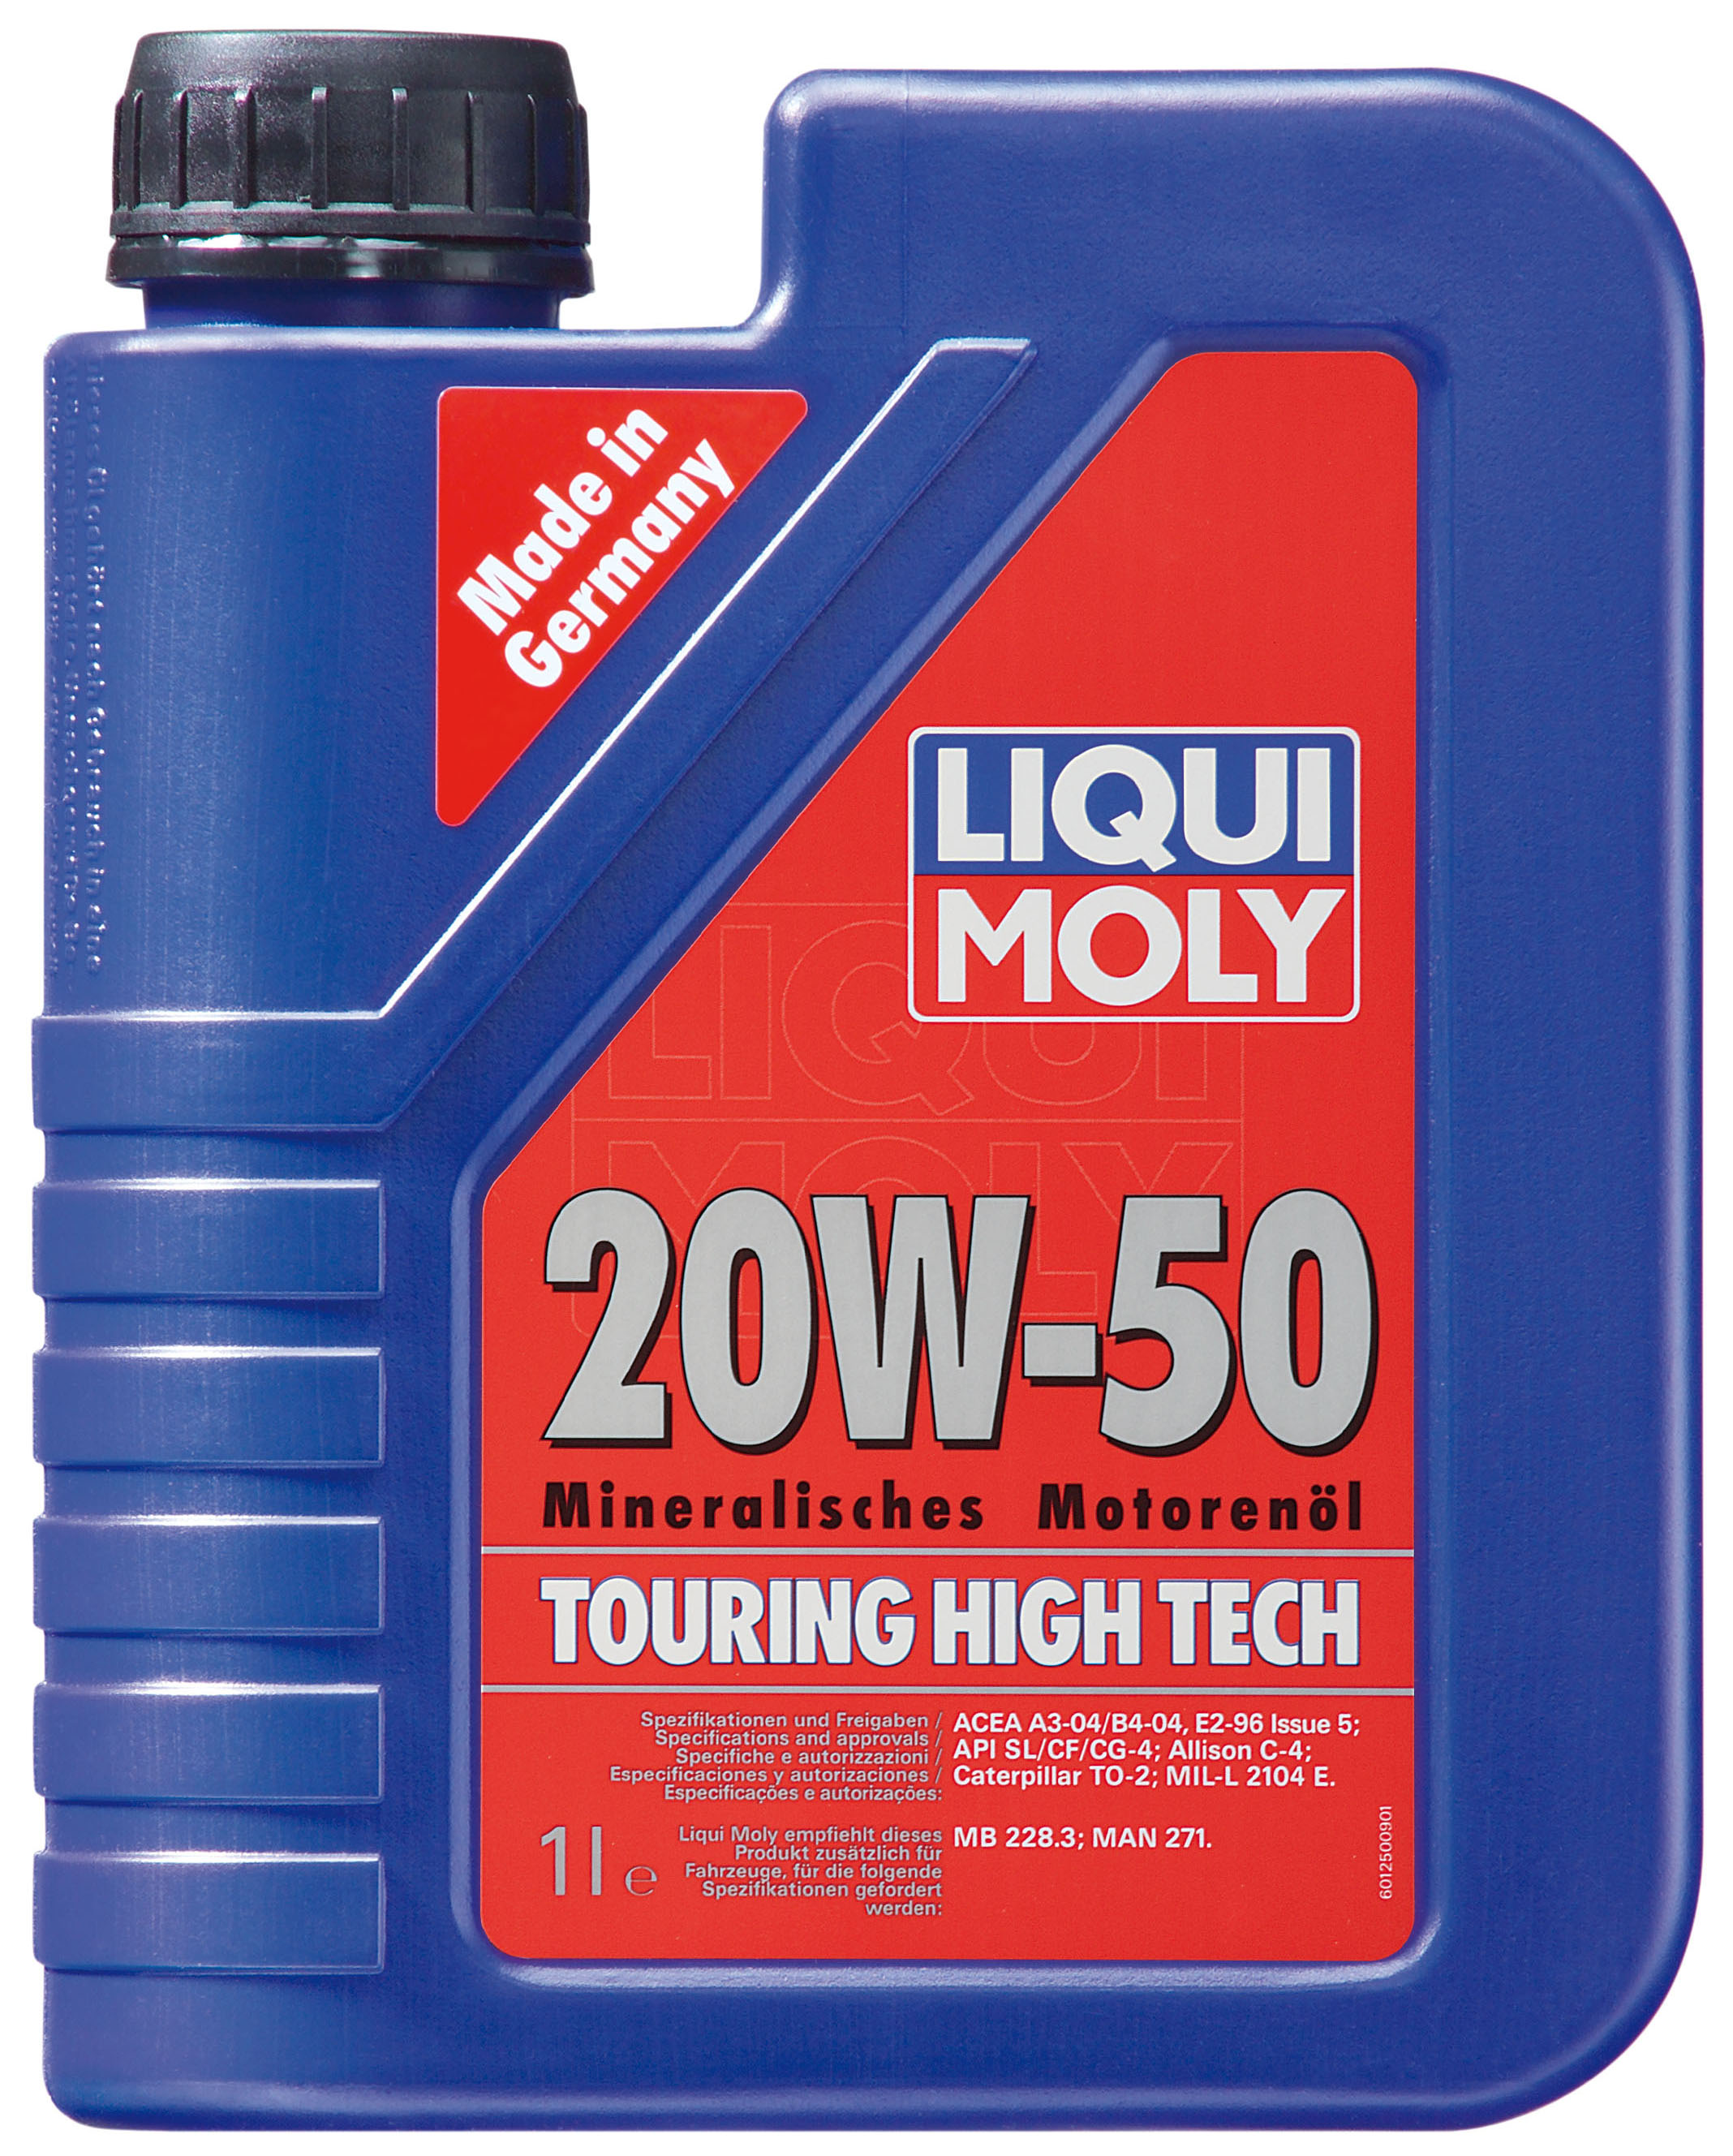 liqui moly 1255 touring high tech motor l 20 w 50 5 liter. Black Bedroom Furniture Sets. Home Design Ideas